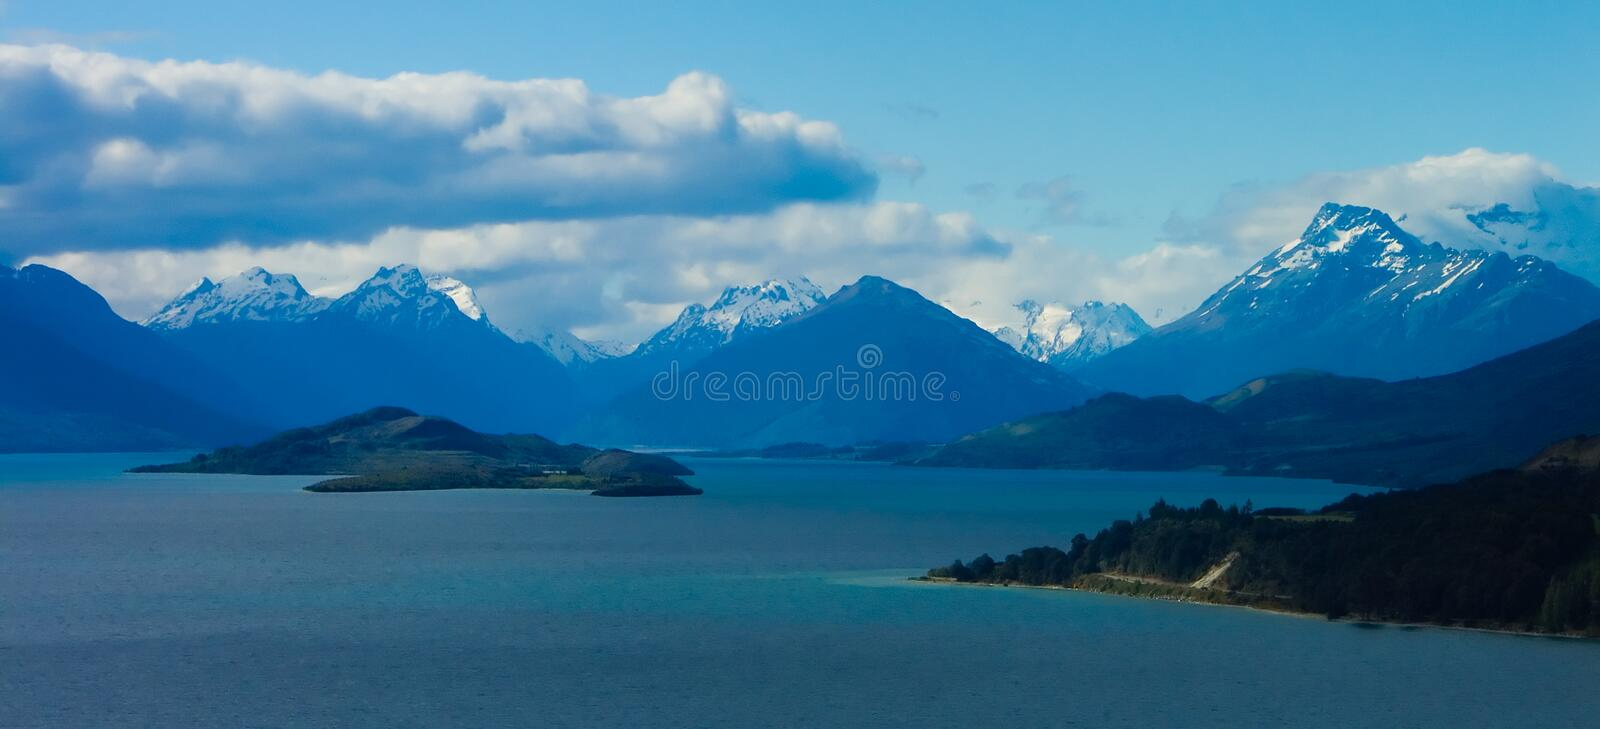 Lakes and Mountains stock images